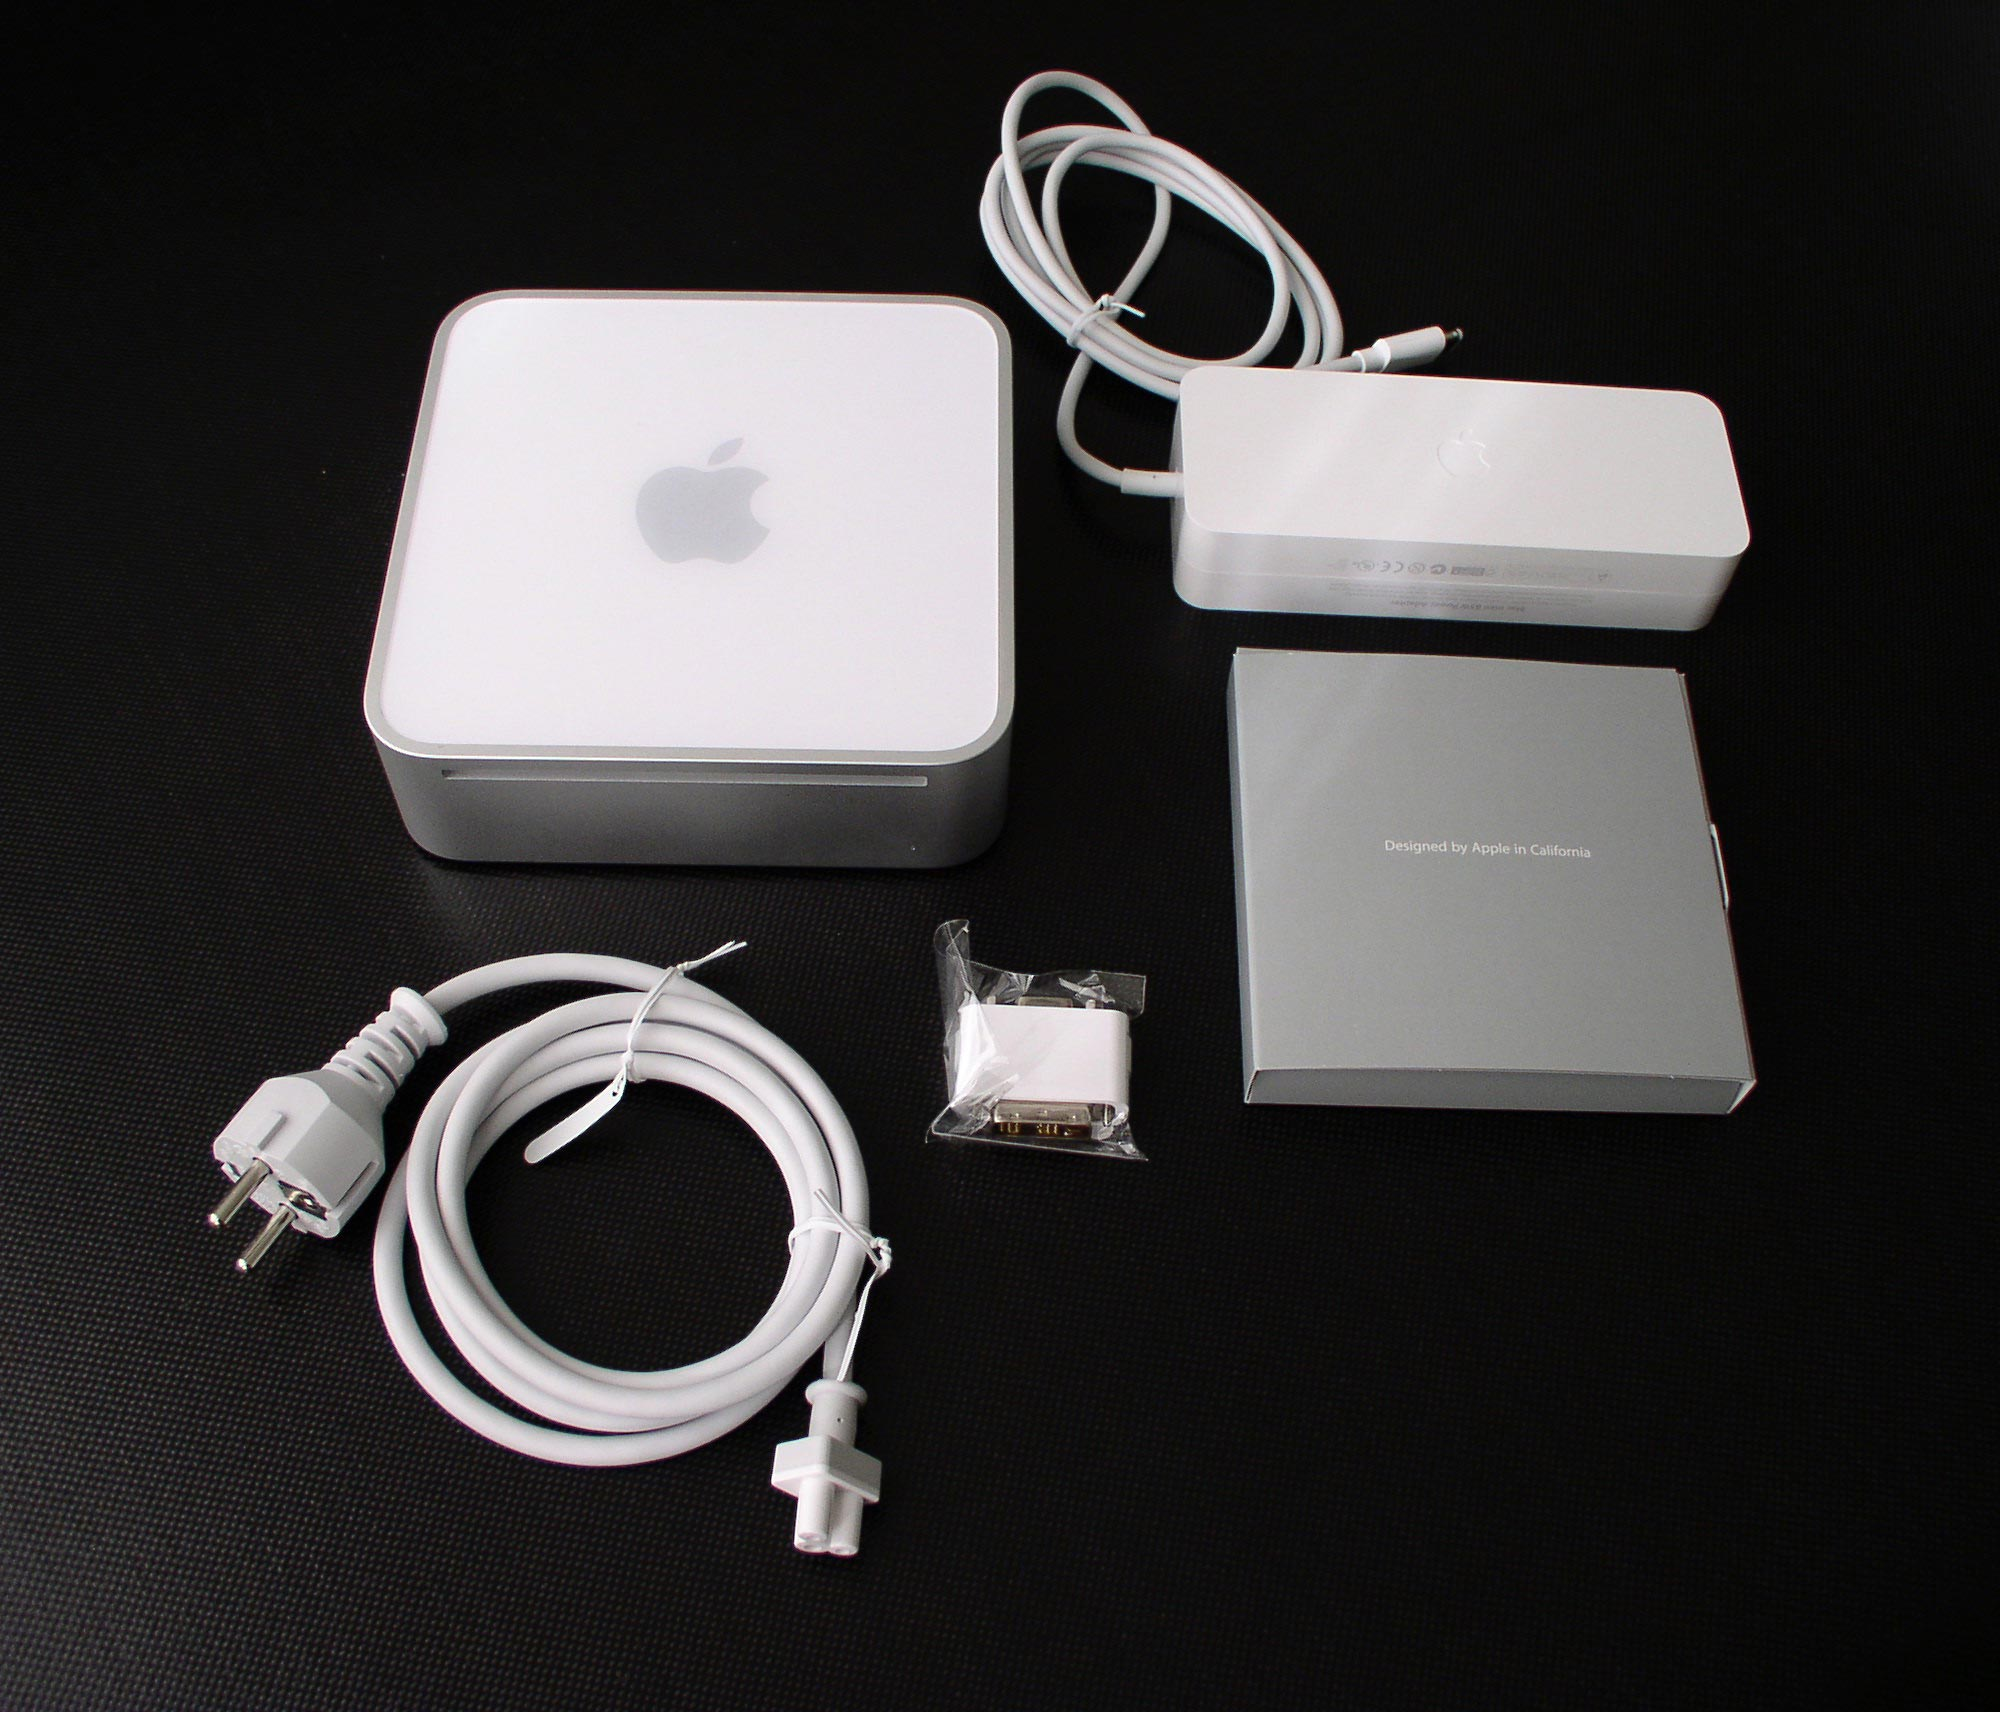 Mac mini unboxing